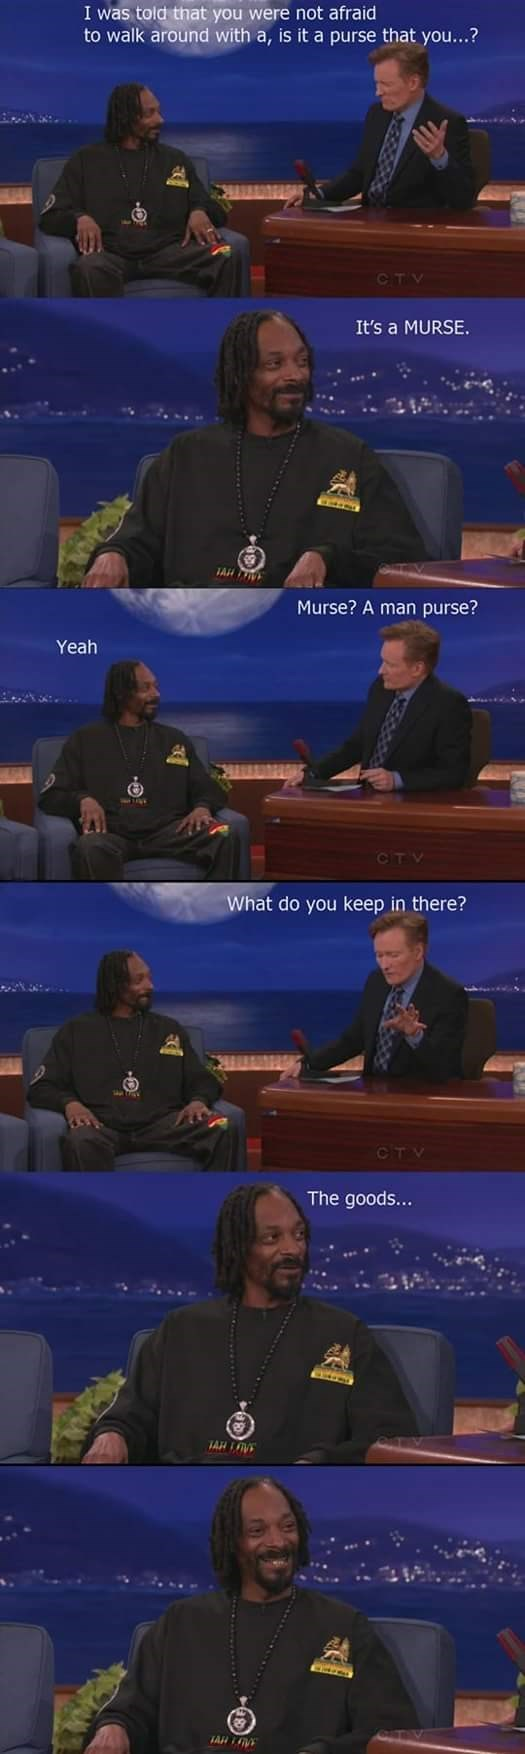 snoop dogg meme - News - I was told that you were not afraid to walk around with a, is it a purse that you...? CTV It's a MURSE. TAH Murse? A man purse? Yeah CTV What do you keep in there? CTV The goods... AH AH